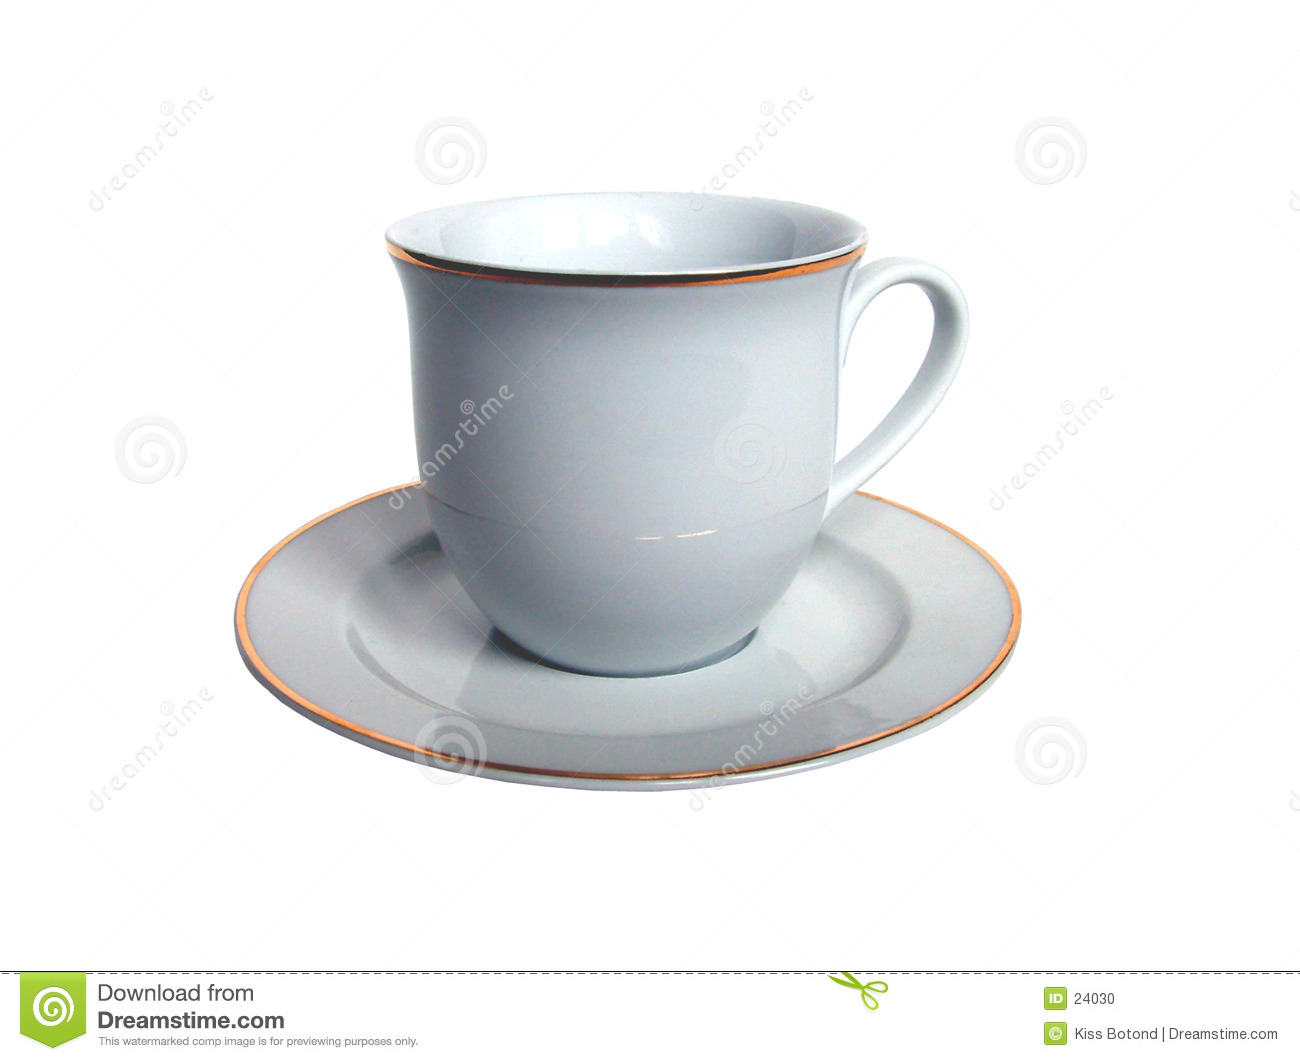 Traditionell caffecup